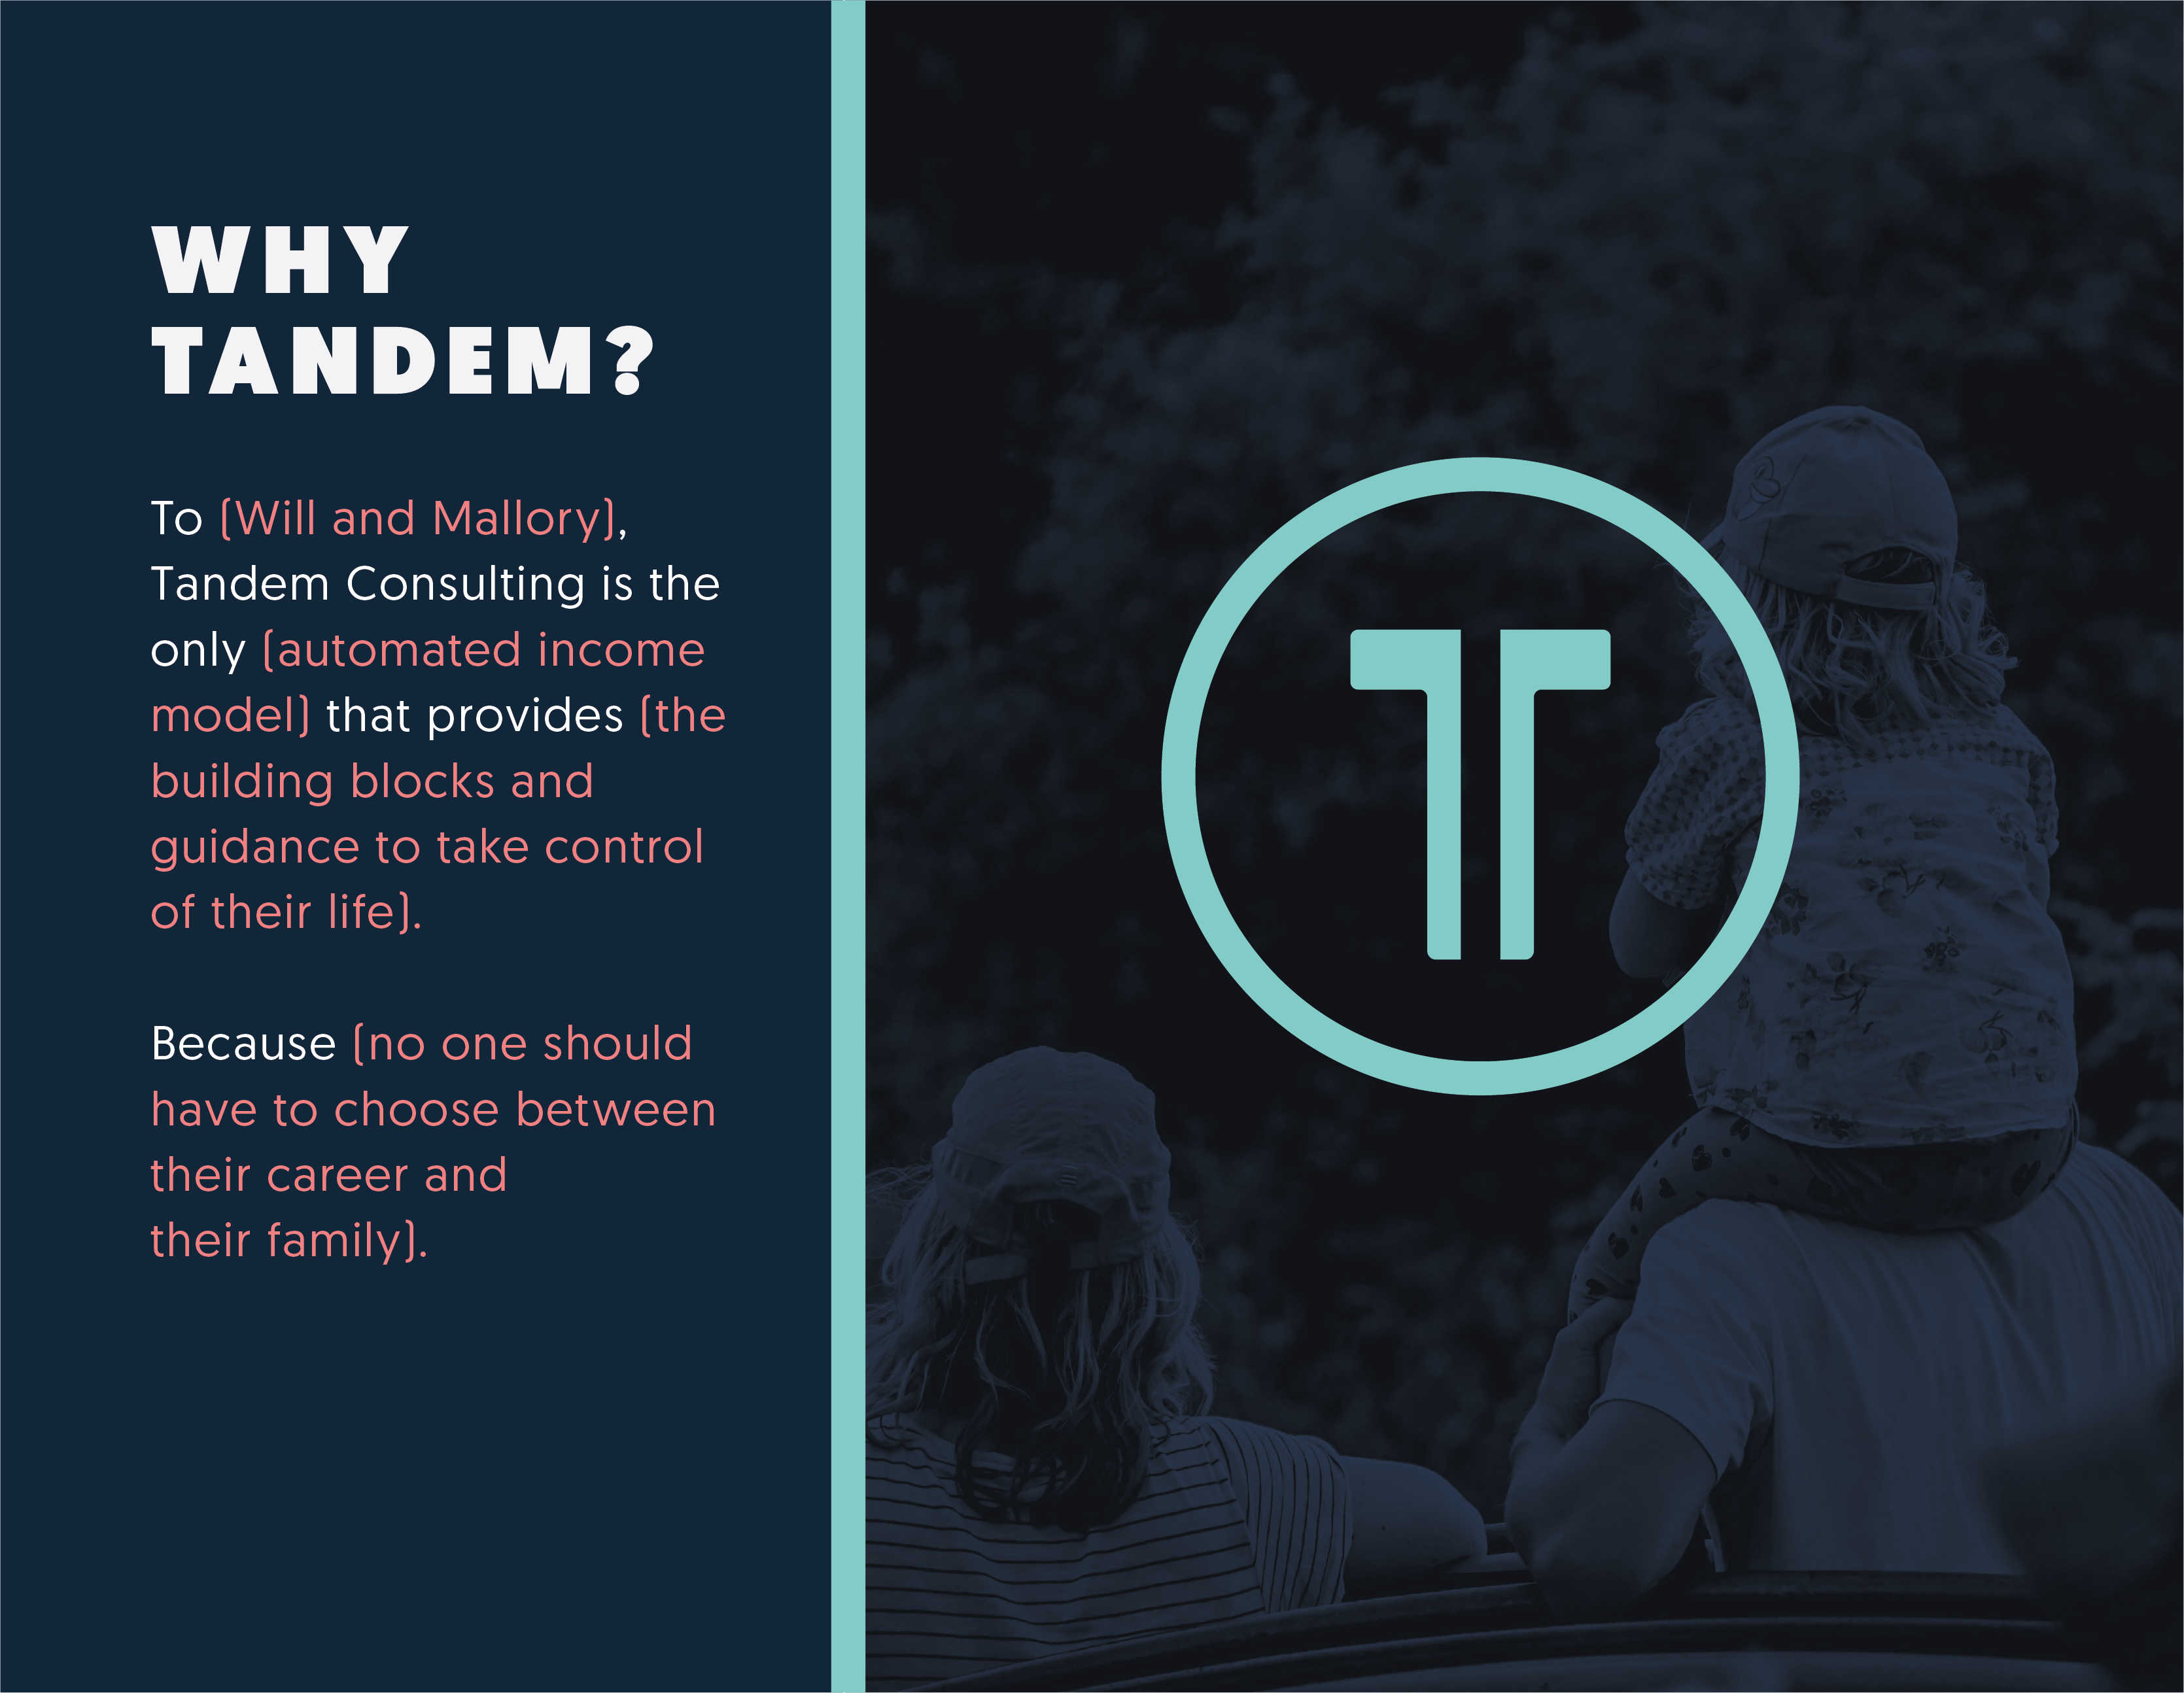 Branded graphic with the following text: Why Tandem? To Will and Mallory, Tandem Consulting is the only automated income model that provides the building blocks and guidance to take control of their life. Because no one should have to choose between their career and their family.